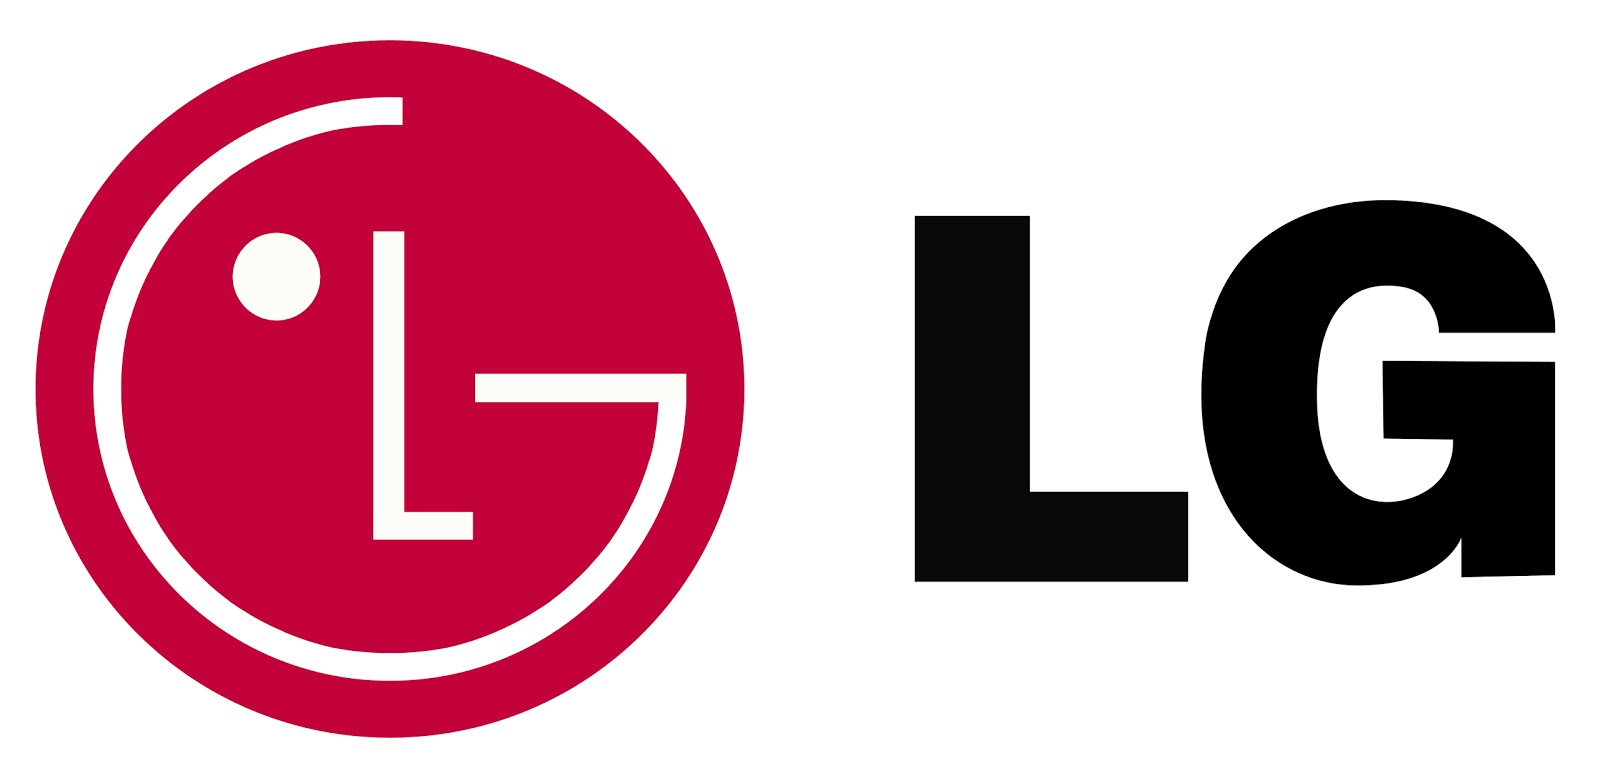 Making LGUP work on LG devices with uppercut tool